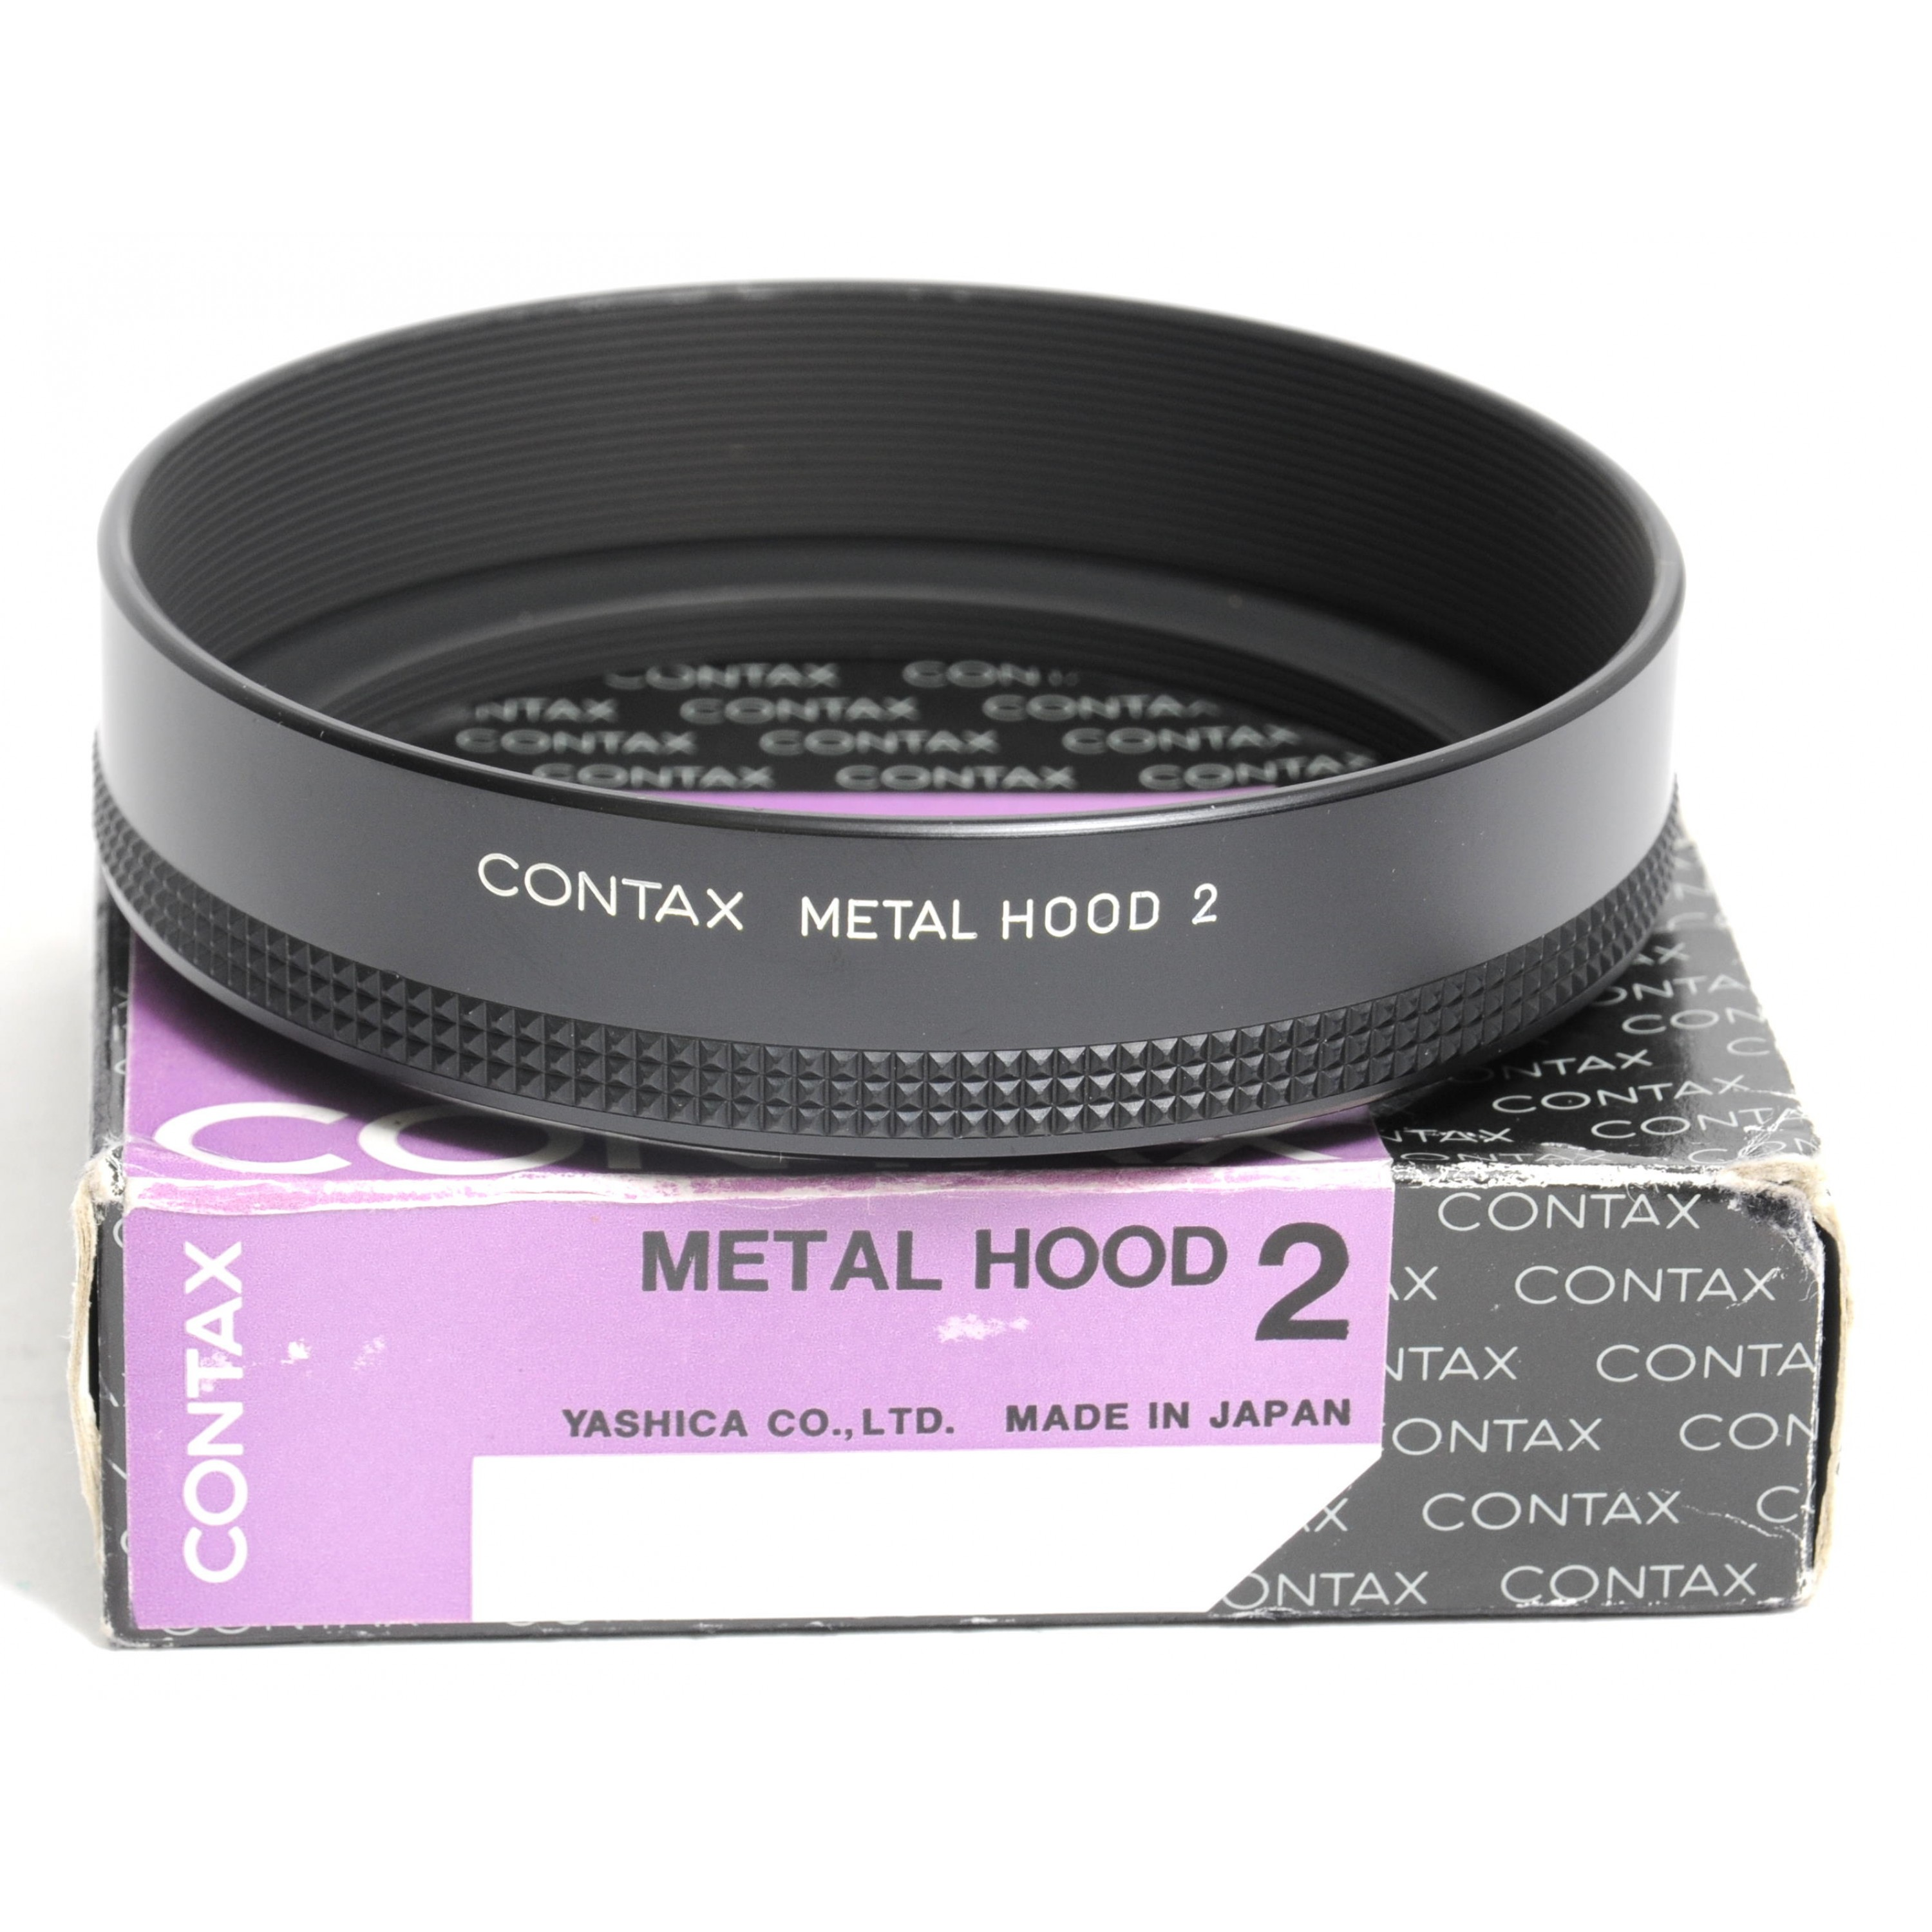 Contax Metal Hood 2 boxed